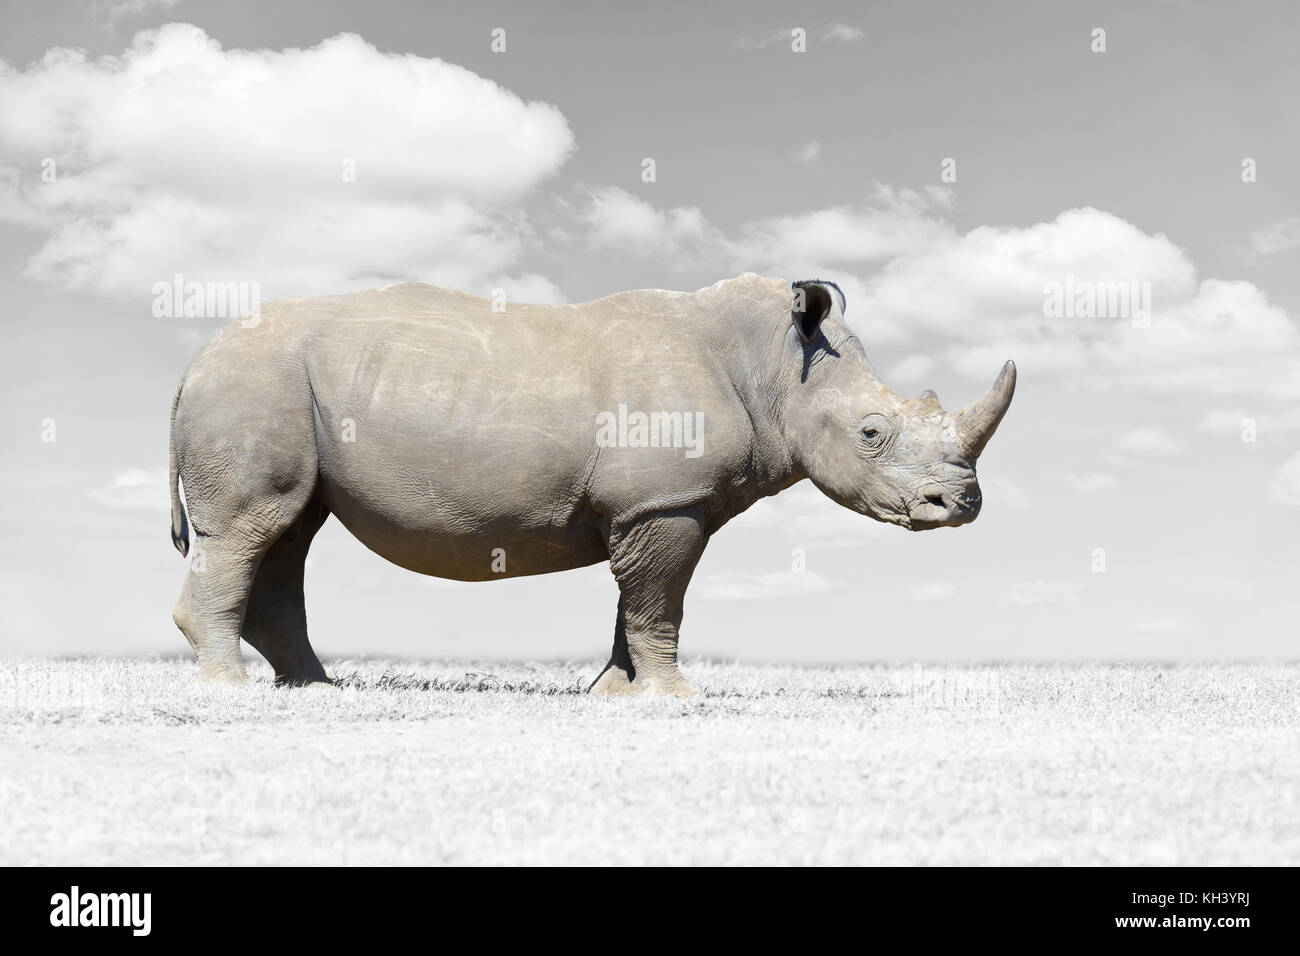 African white rhino, National park of Kenya. Black and white photography with color rhino - Stock Image